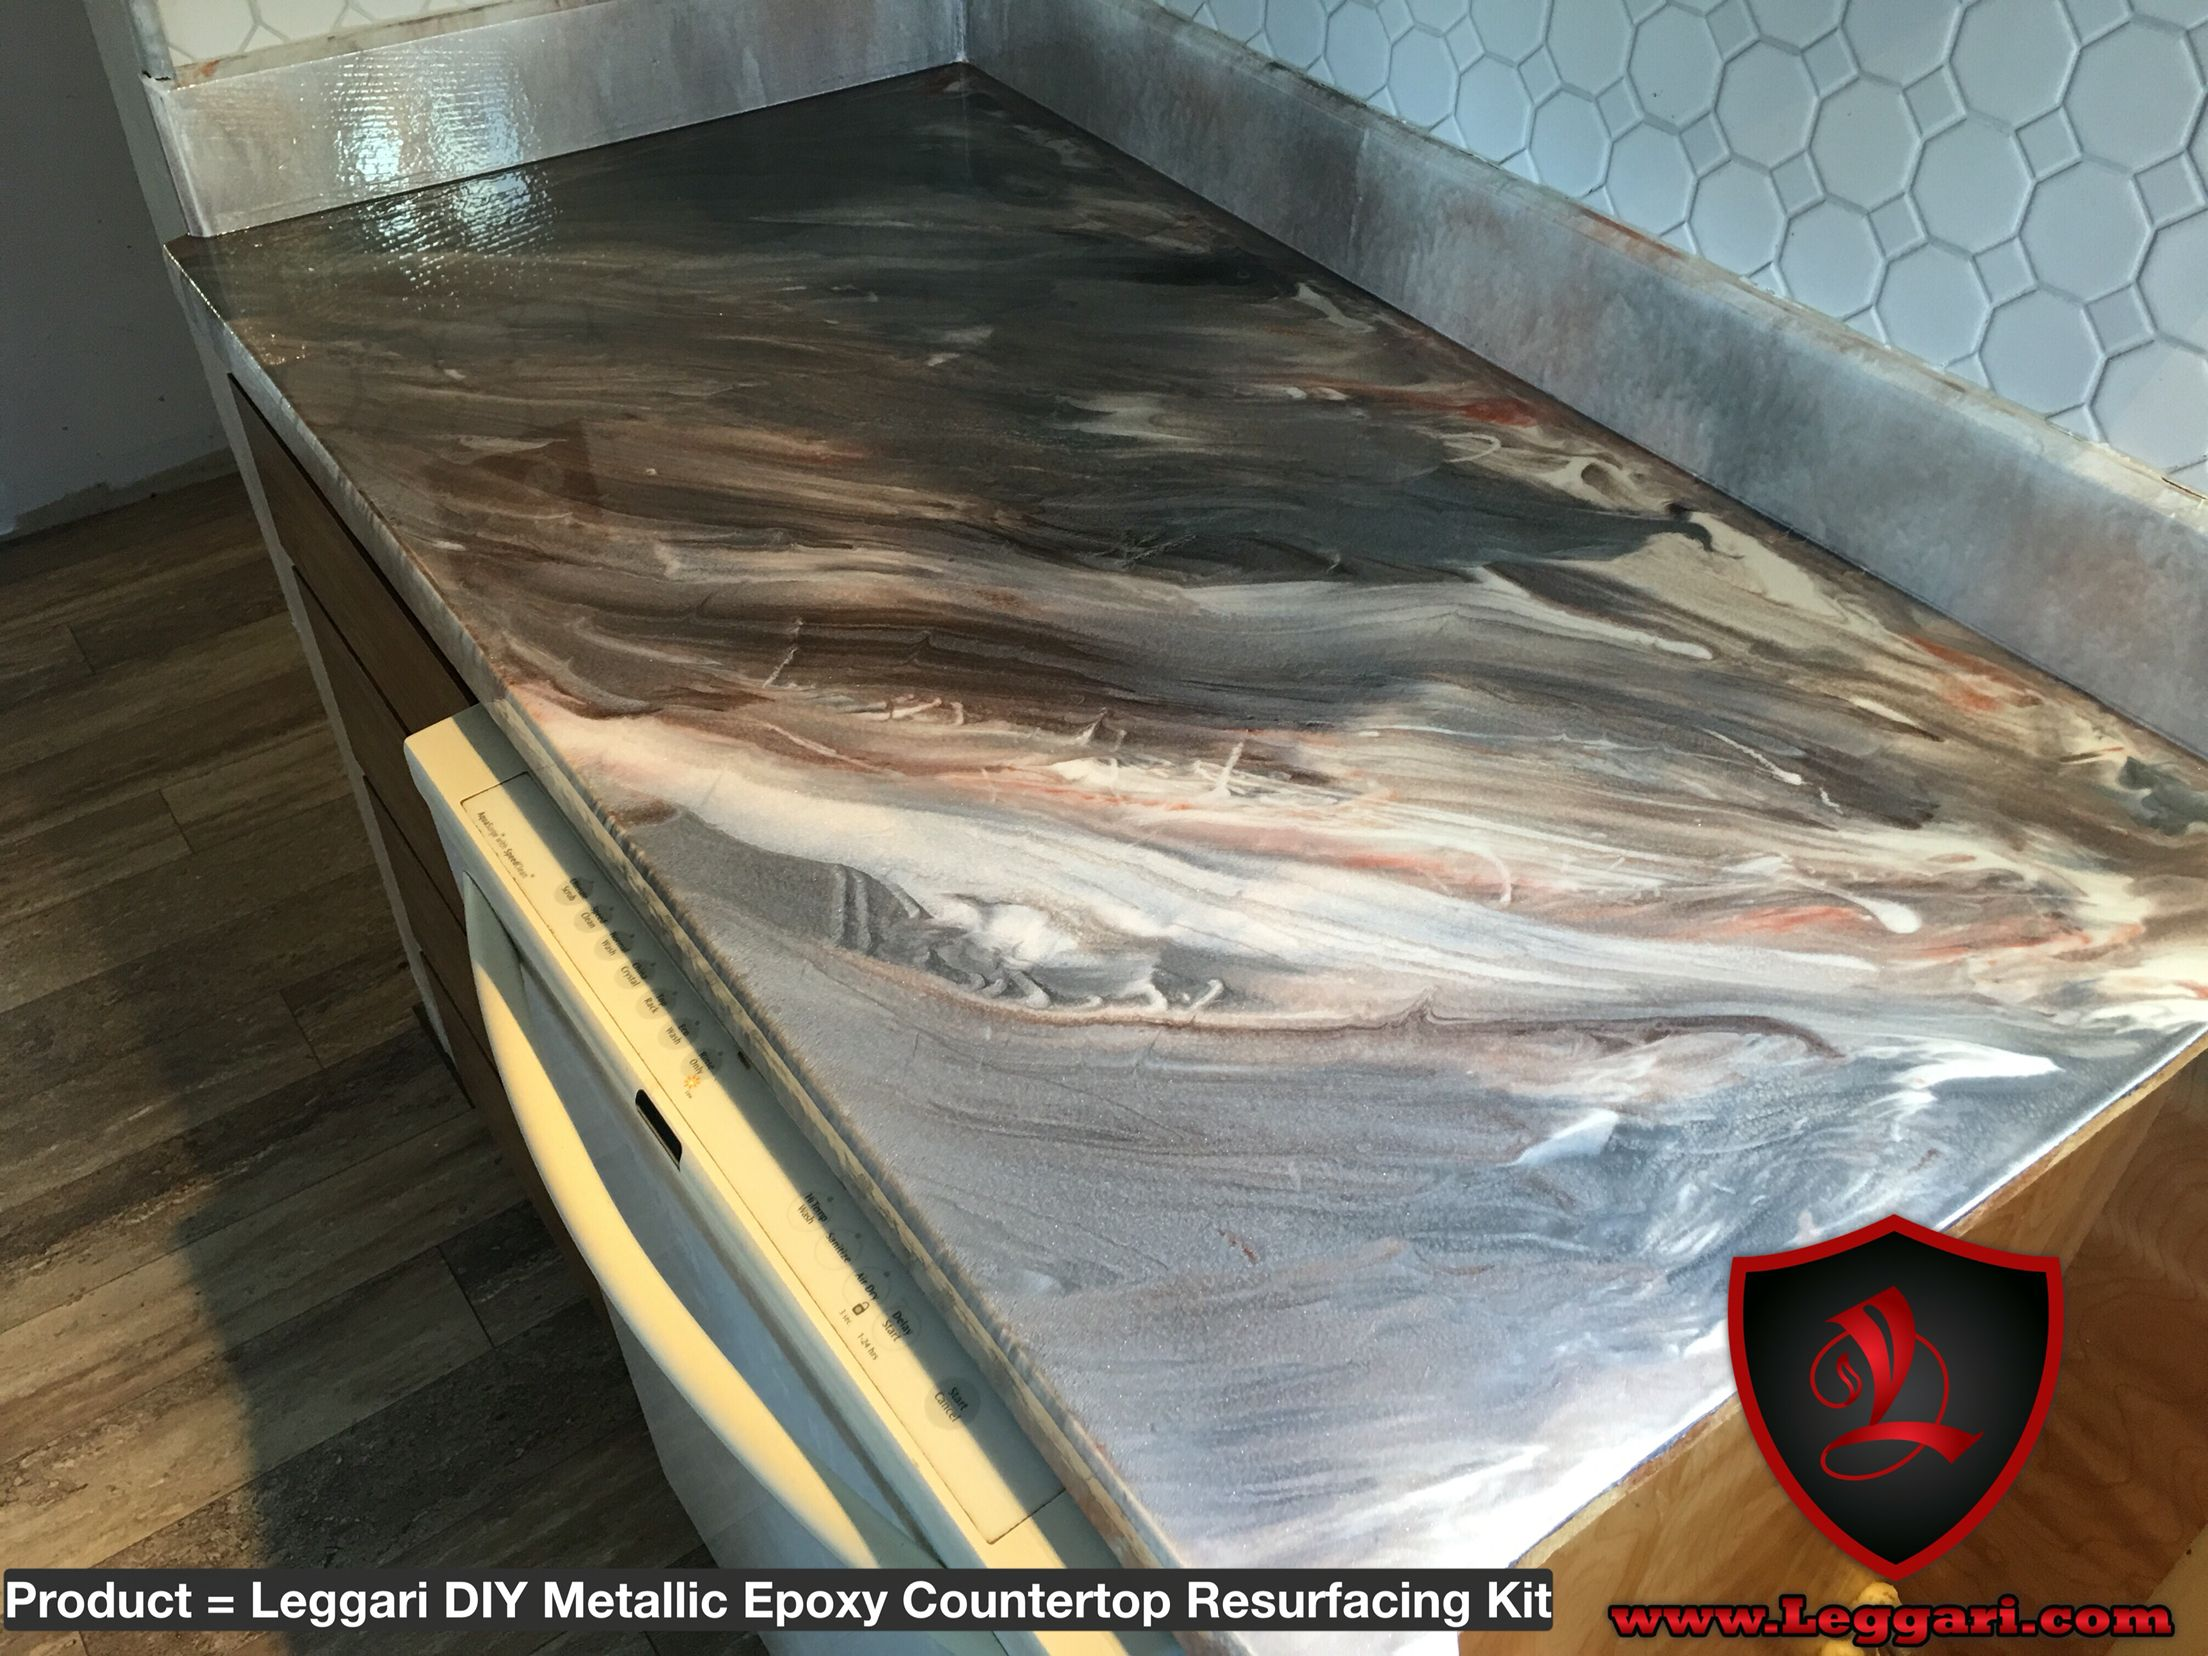 Resurface Countertop Kit This Countertop Was Coated With A Leggari Products Diy